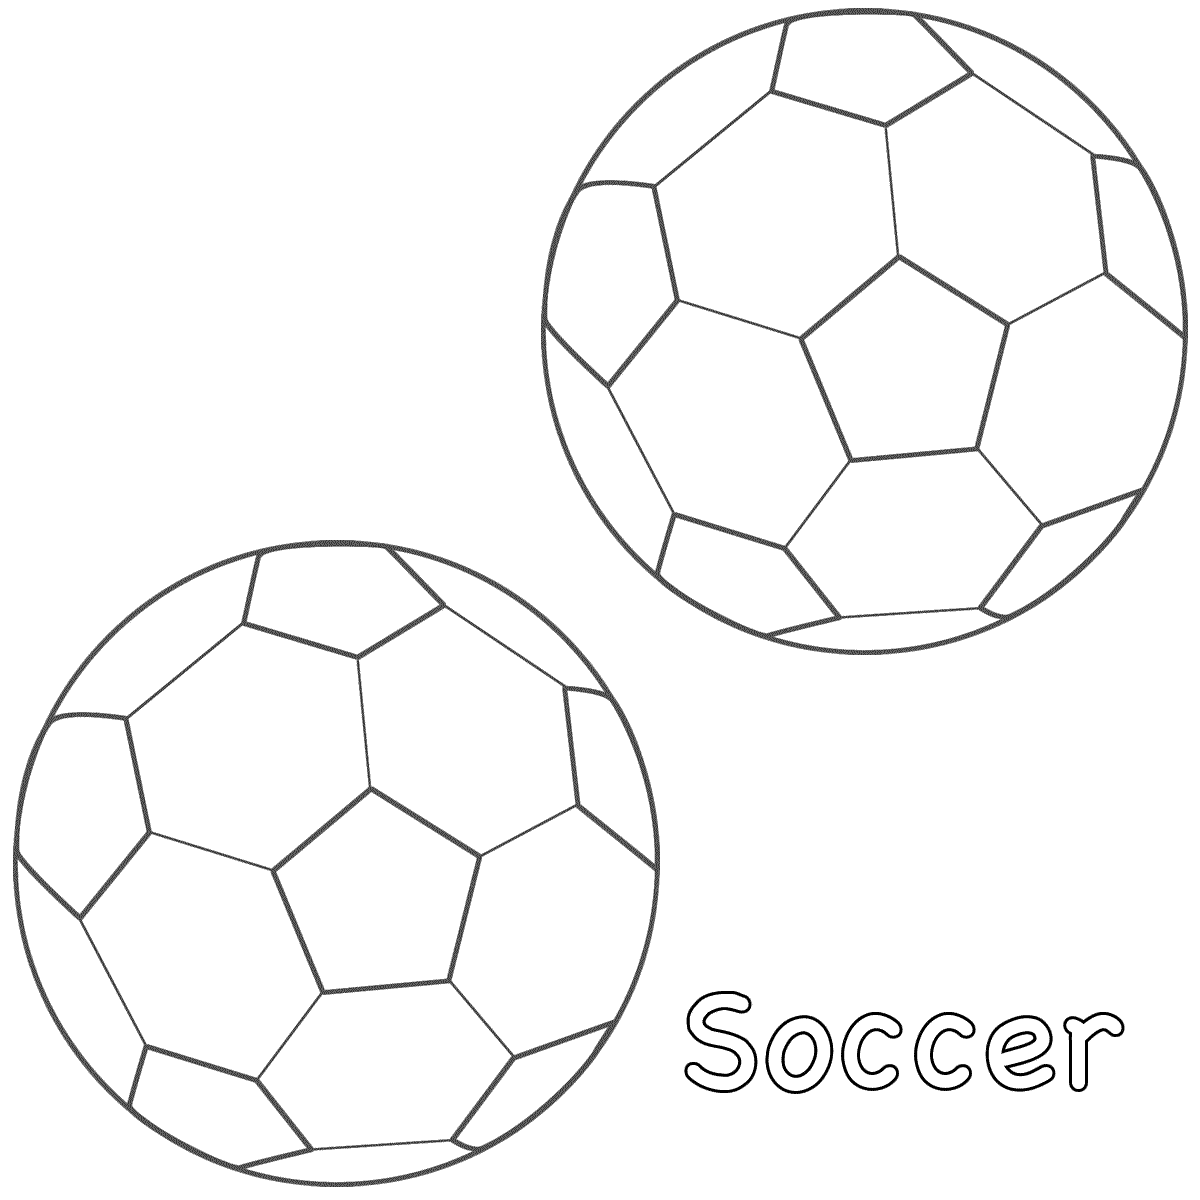 Soccer Ball Coloring Page   Best Coloring Pages